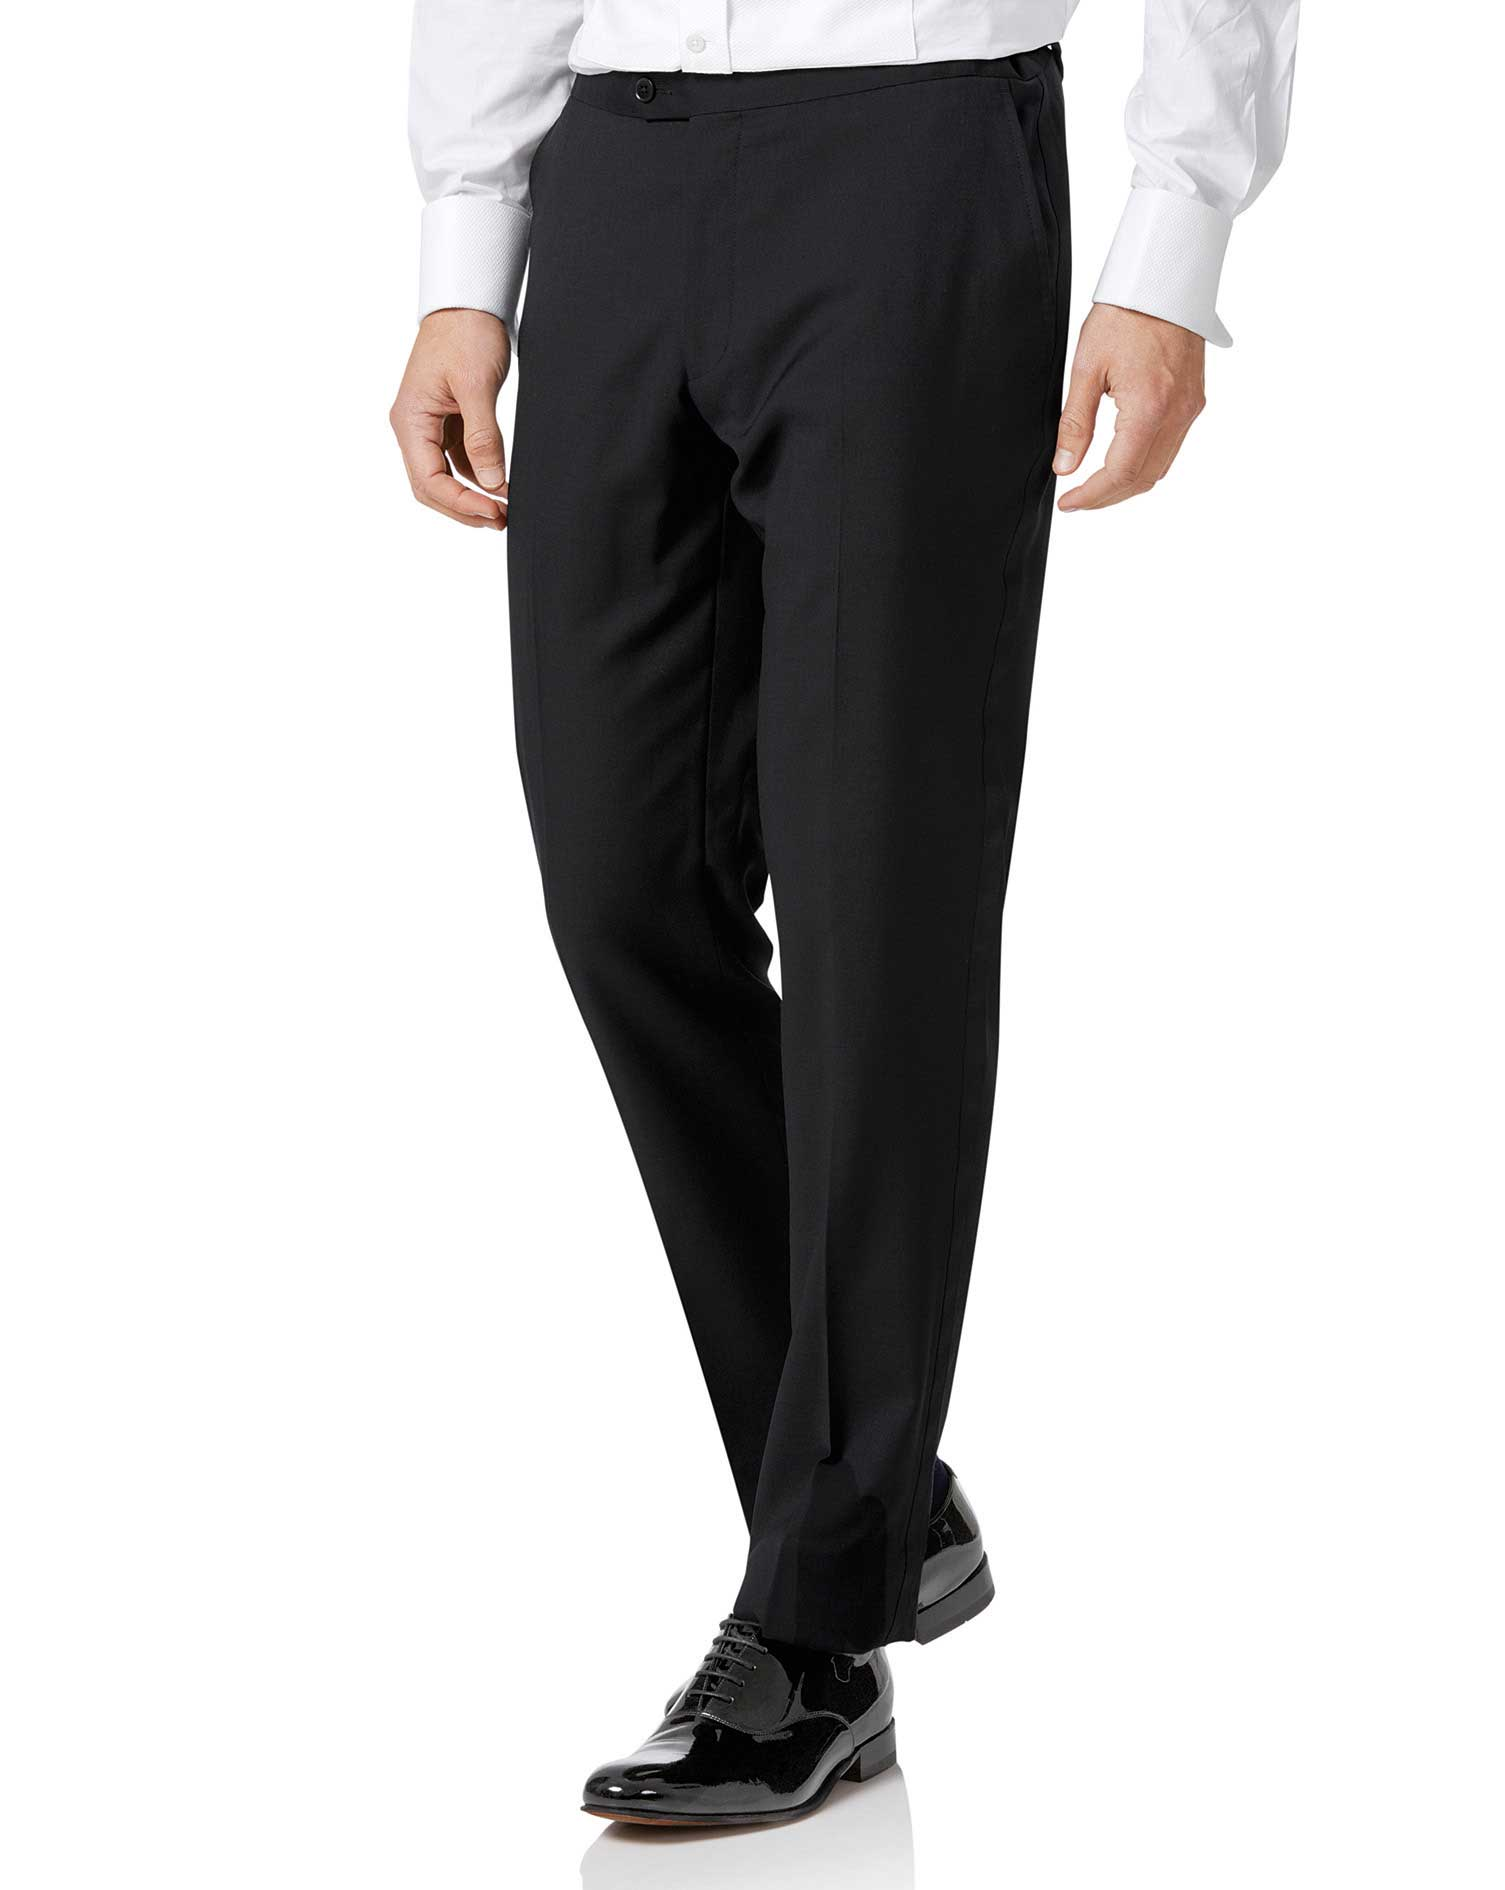 Edwardian Men's Formal Wear Black Slim Fit Dinner Trousers Size W42 L38 by Charles Tyrwhitt £100.00 AT vintagedancer.com